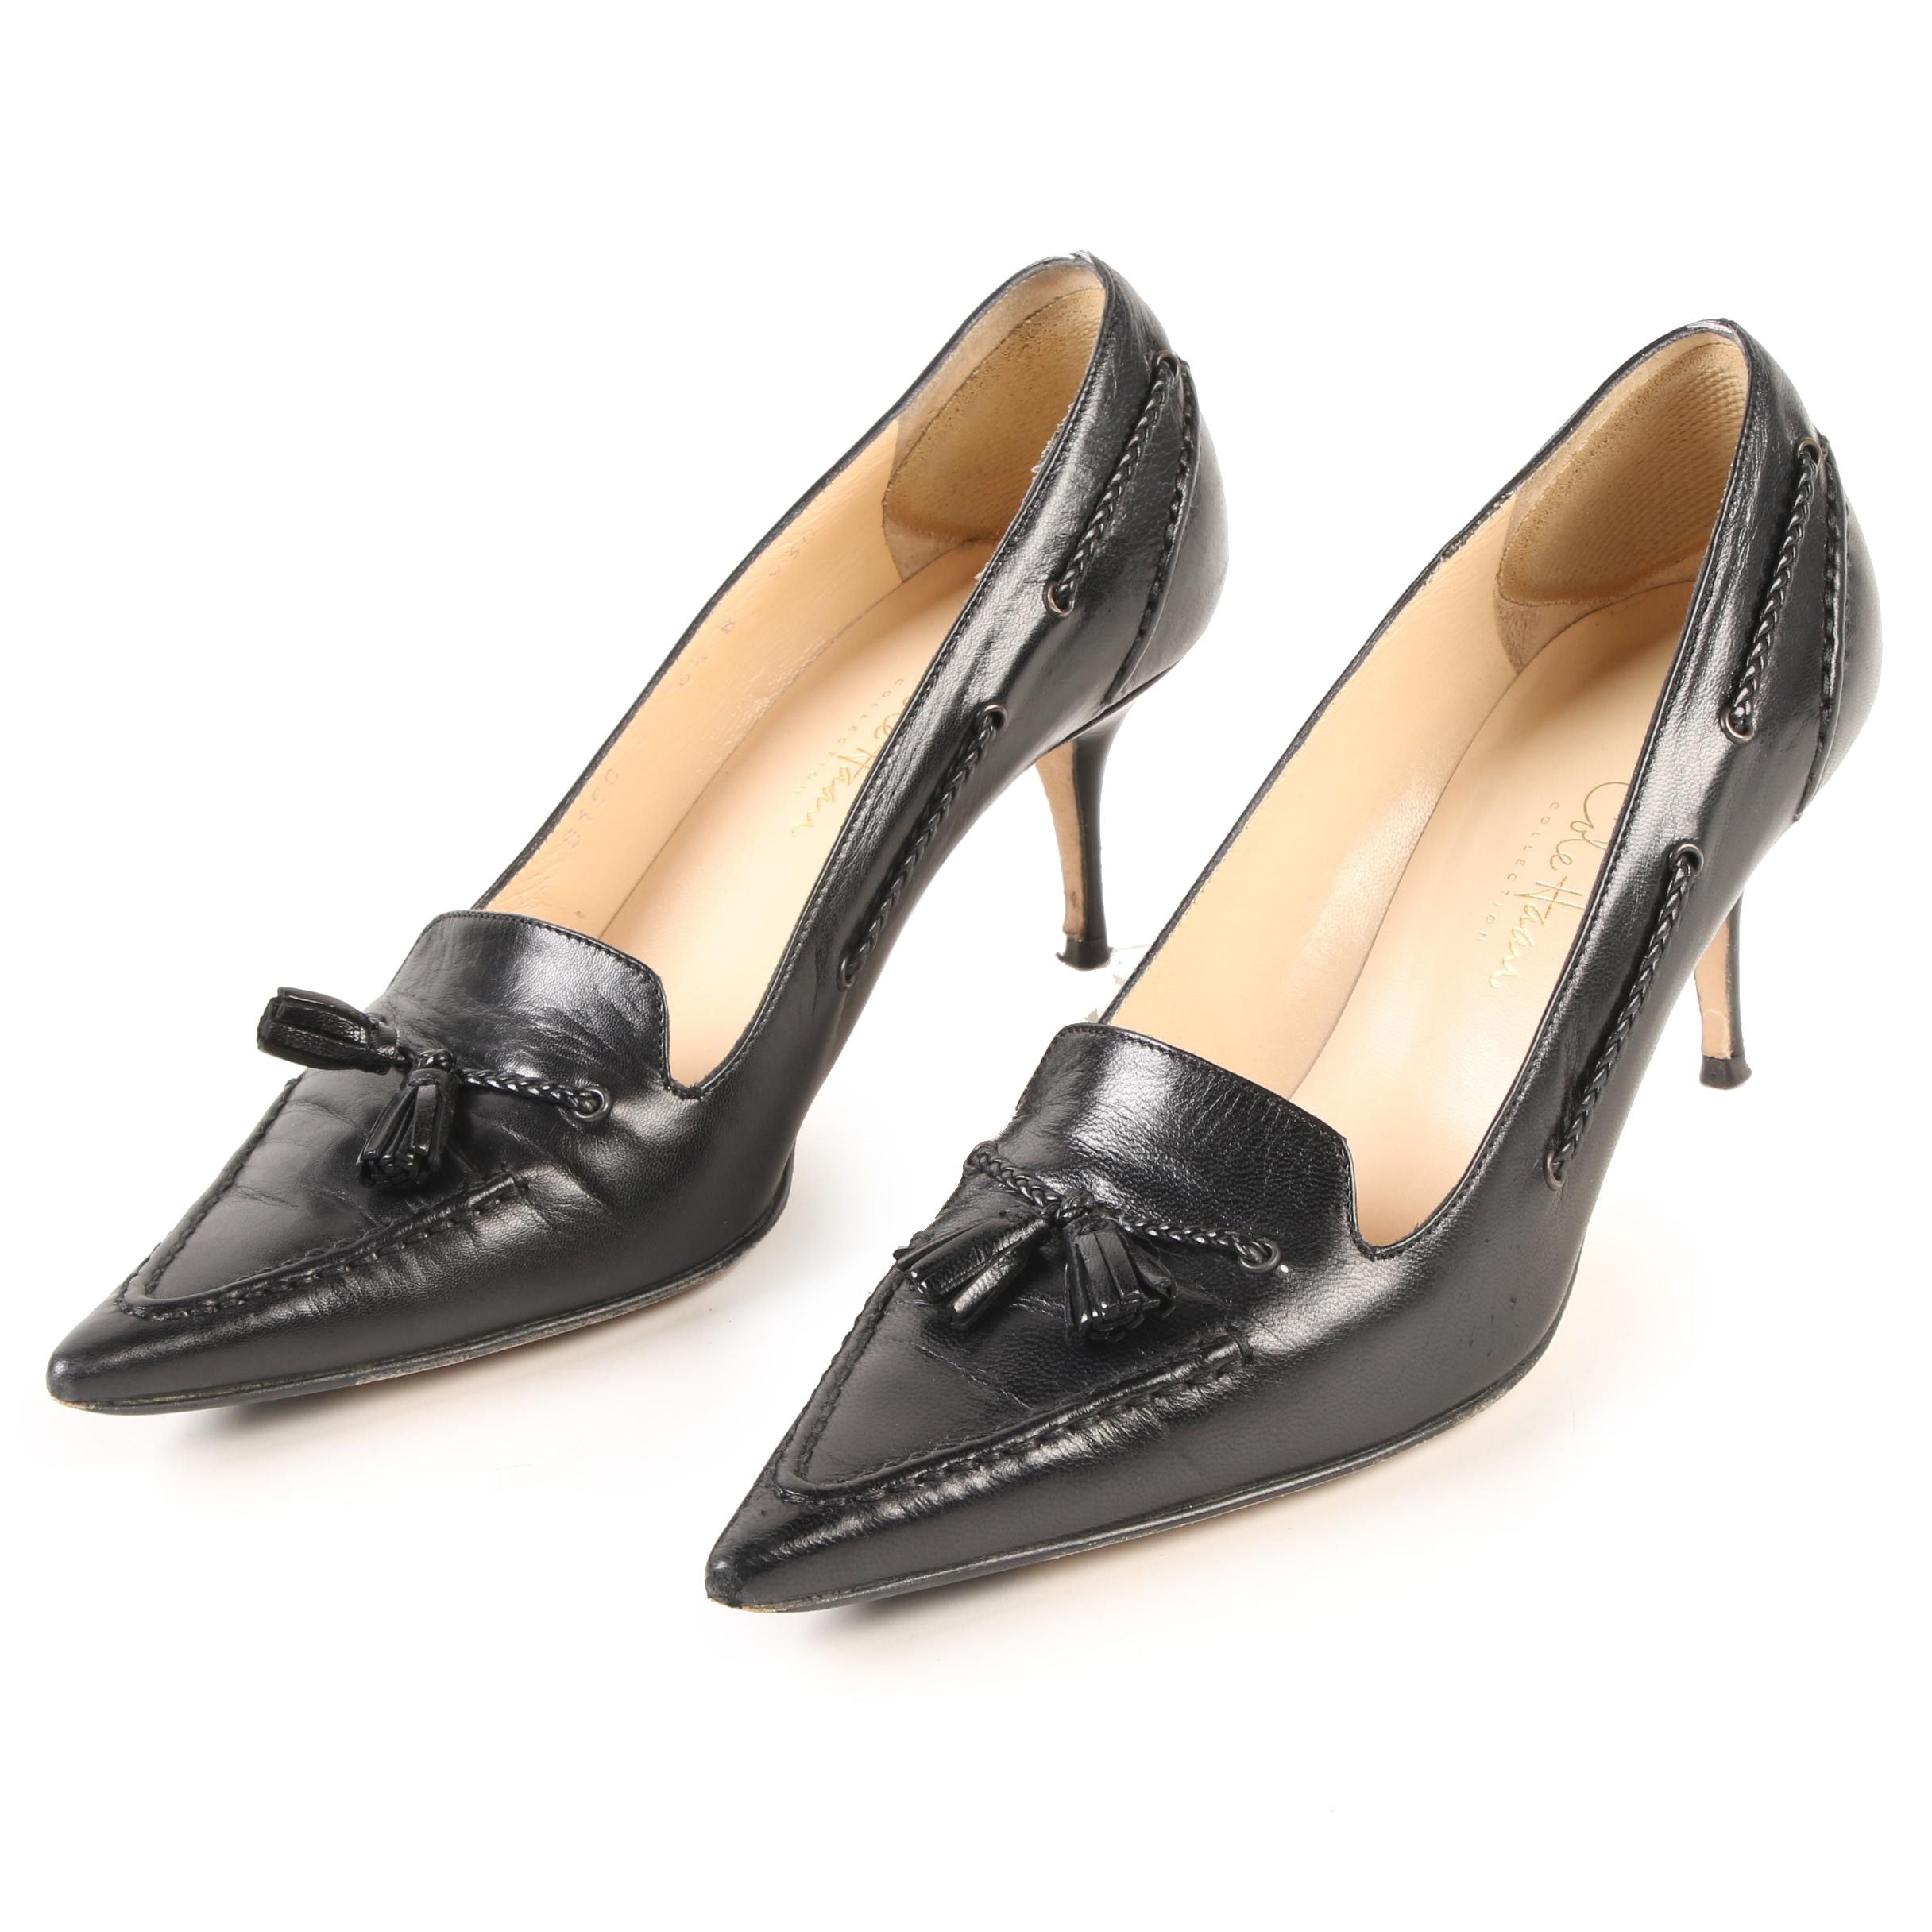 Cole Haan Donata Pump In Black Kidskin Leather with Tassels and Braided Details